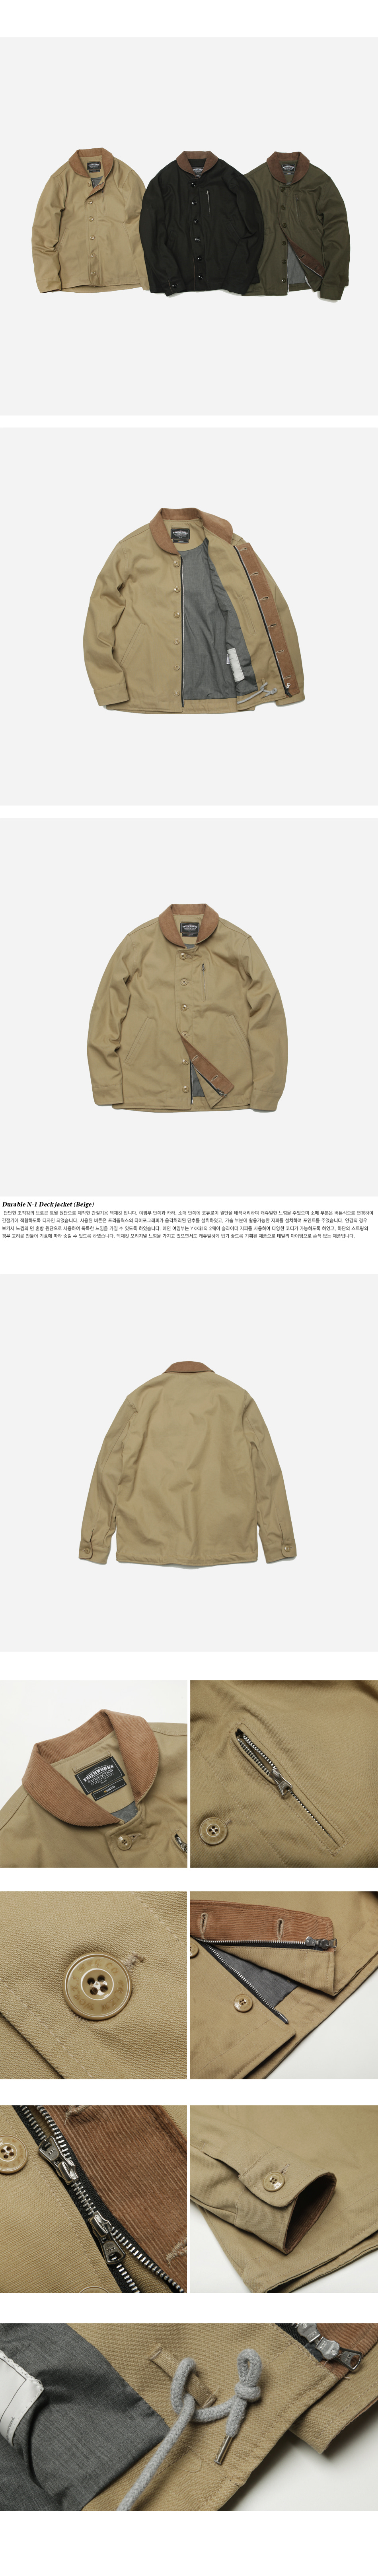 프리즘웍스 Durable N-1 Deck jacket _ beige